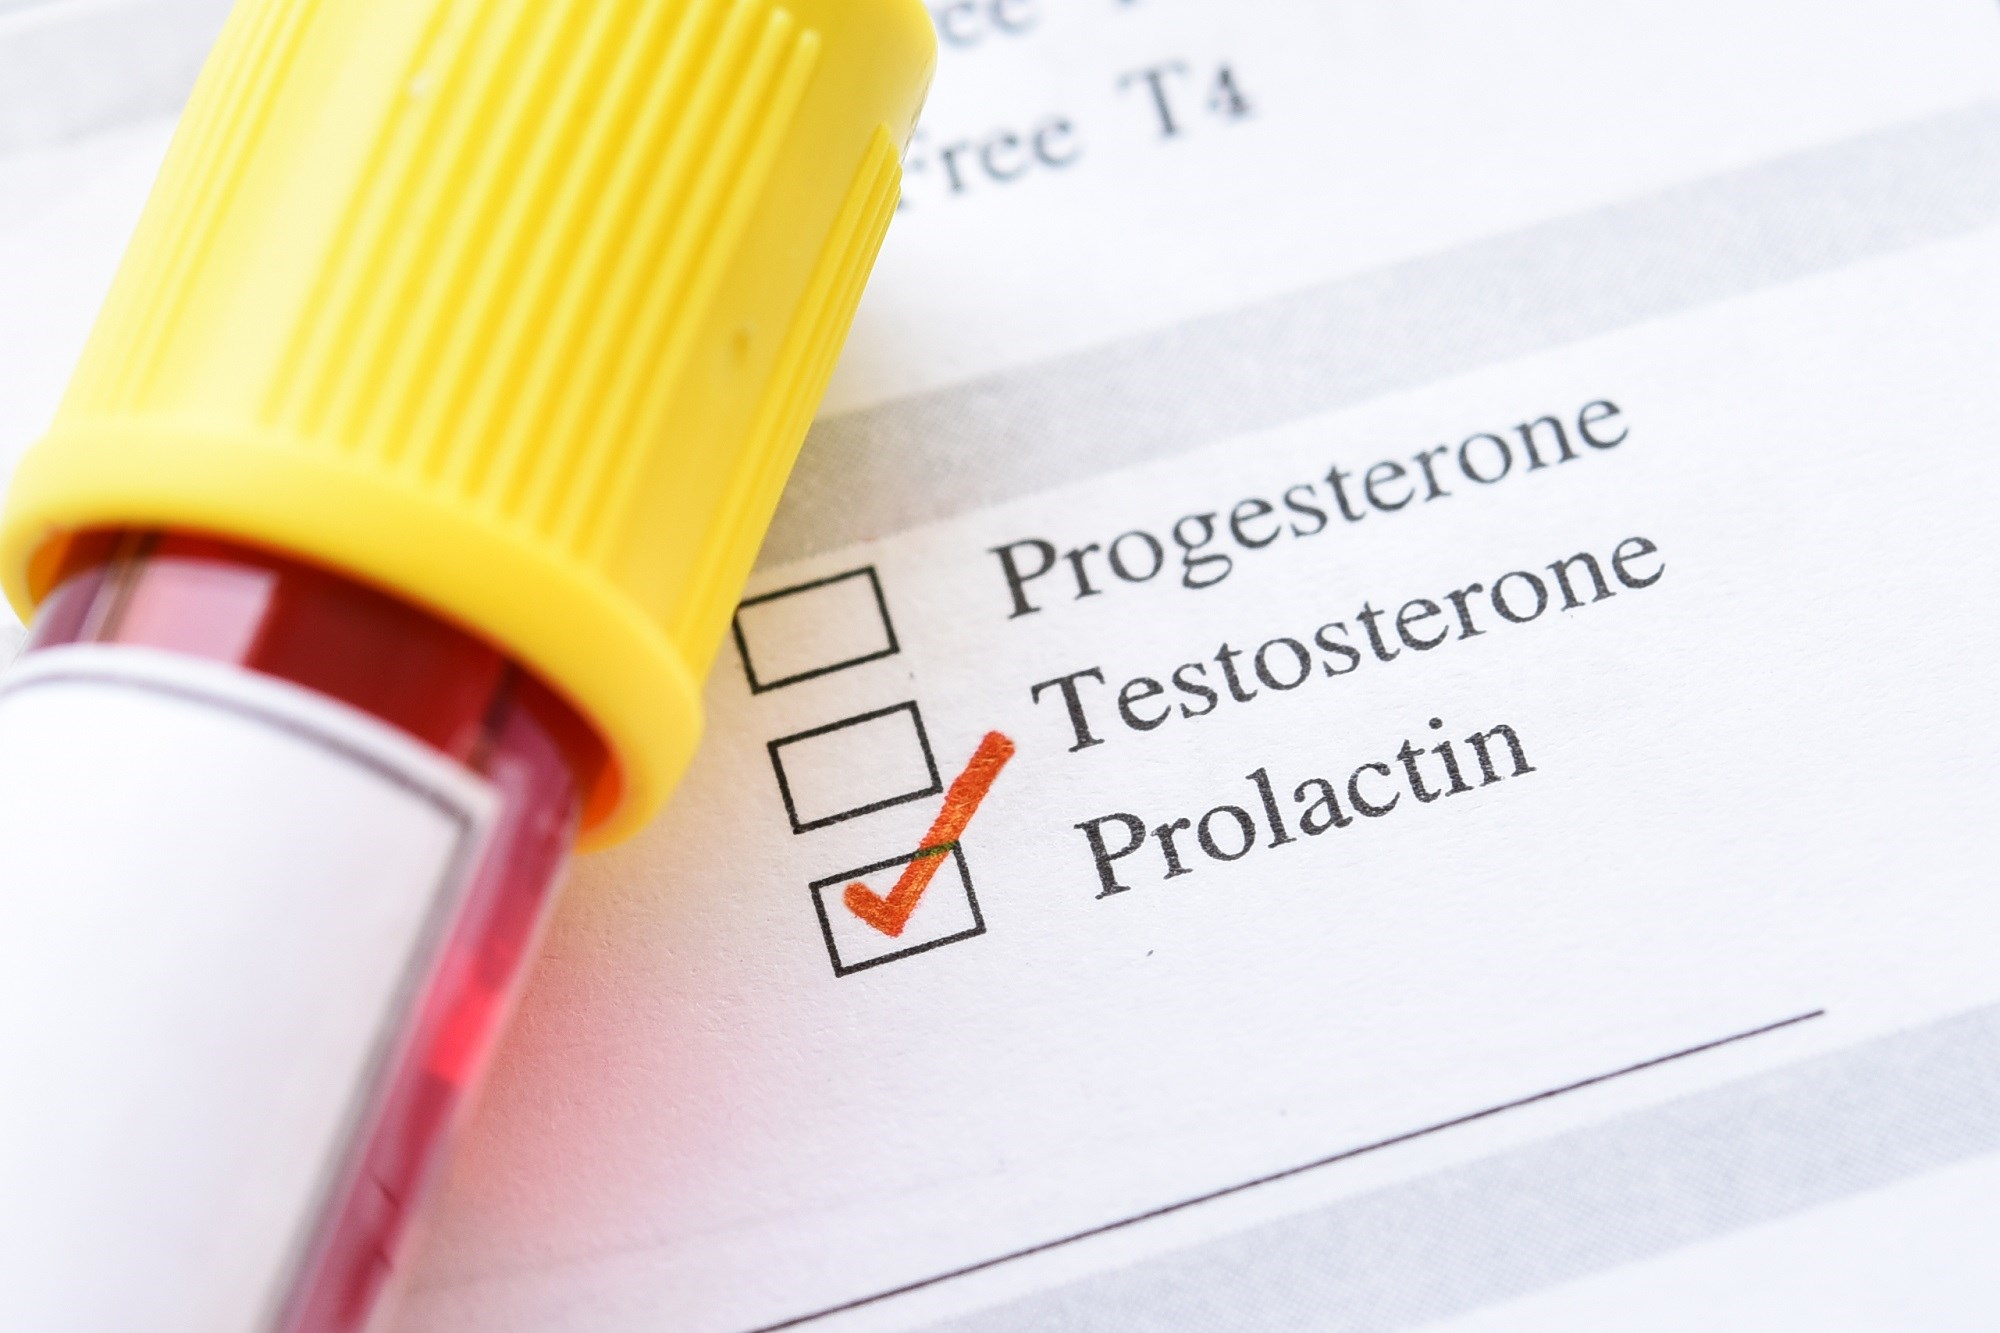 High Circulating Prolactin Concentrations May Lower Risk for Type 2 Diabetes